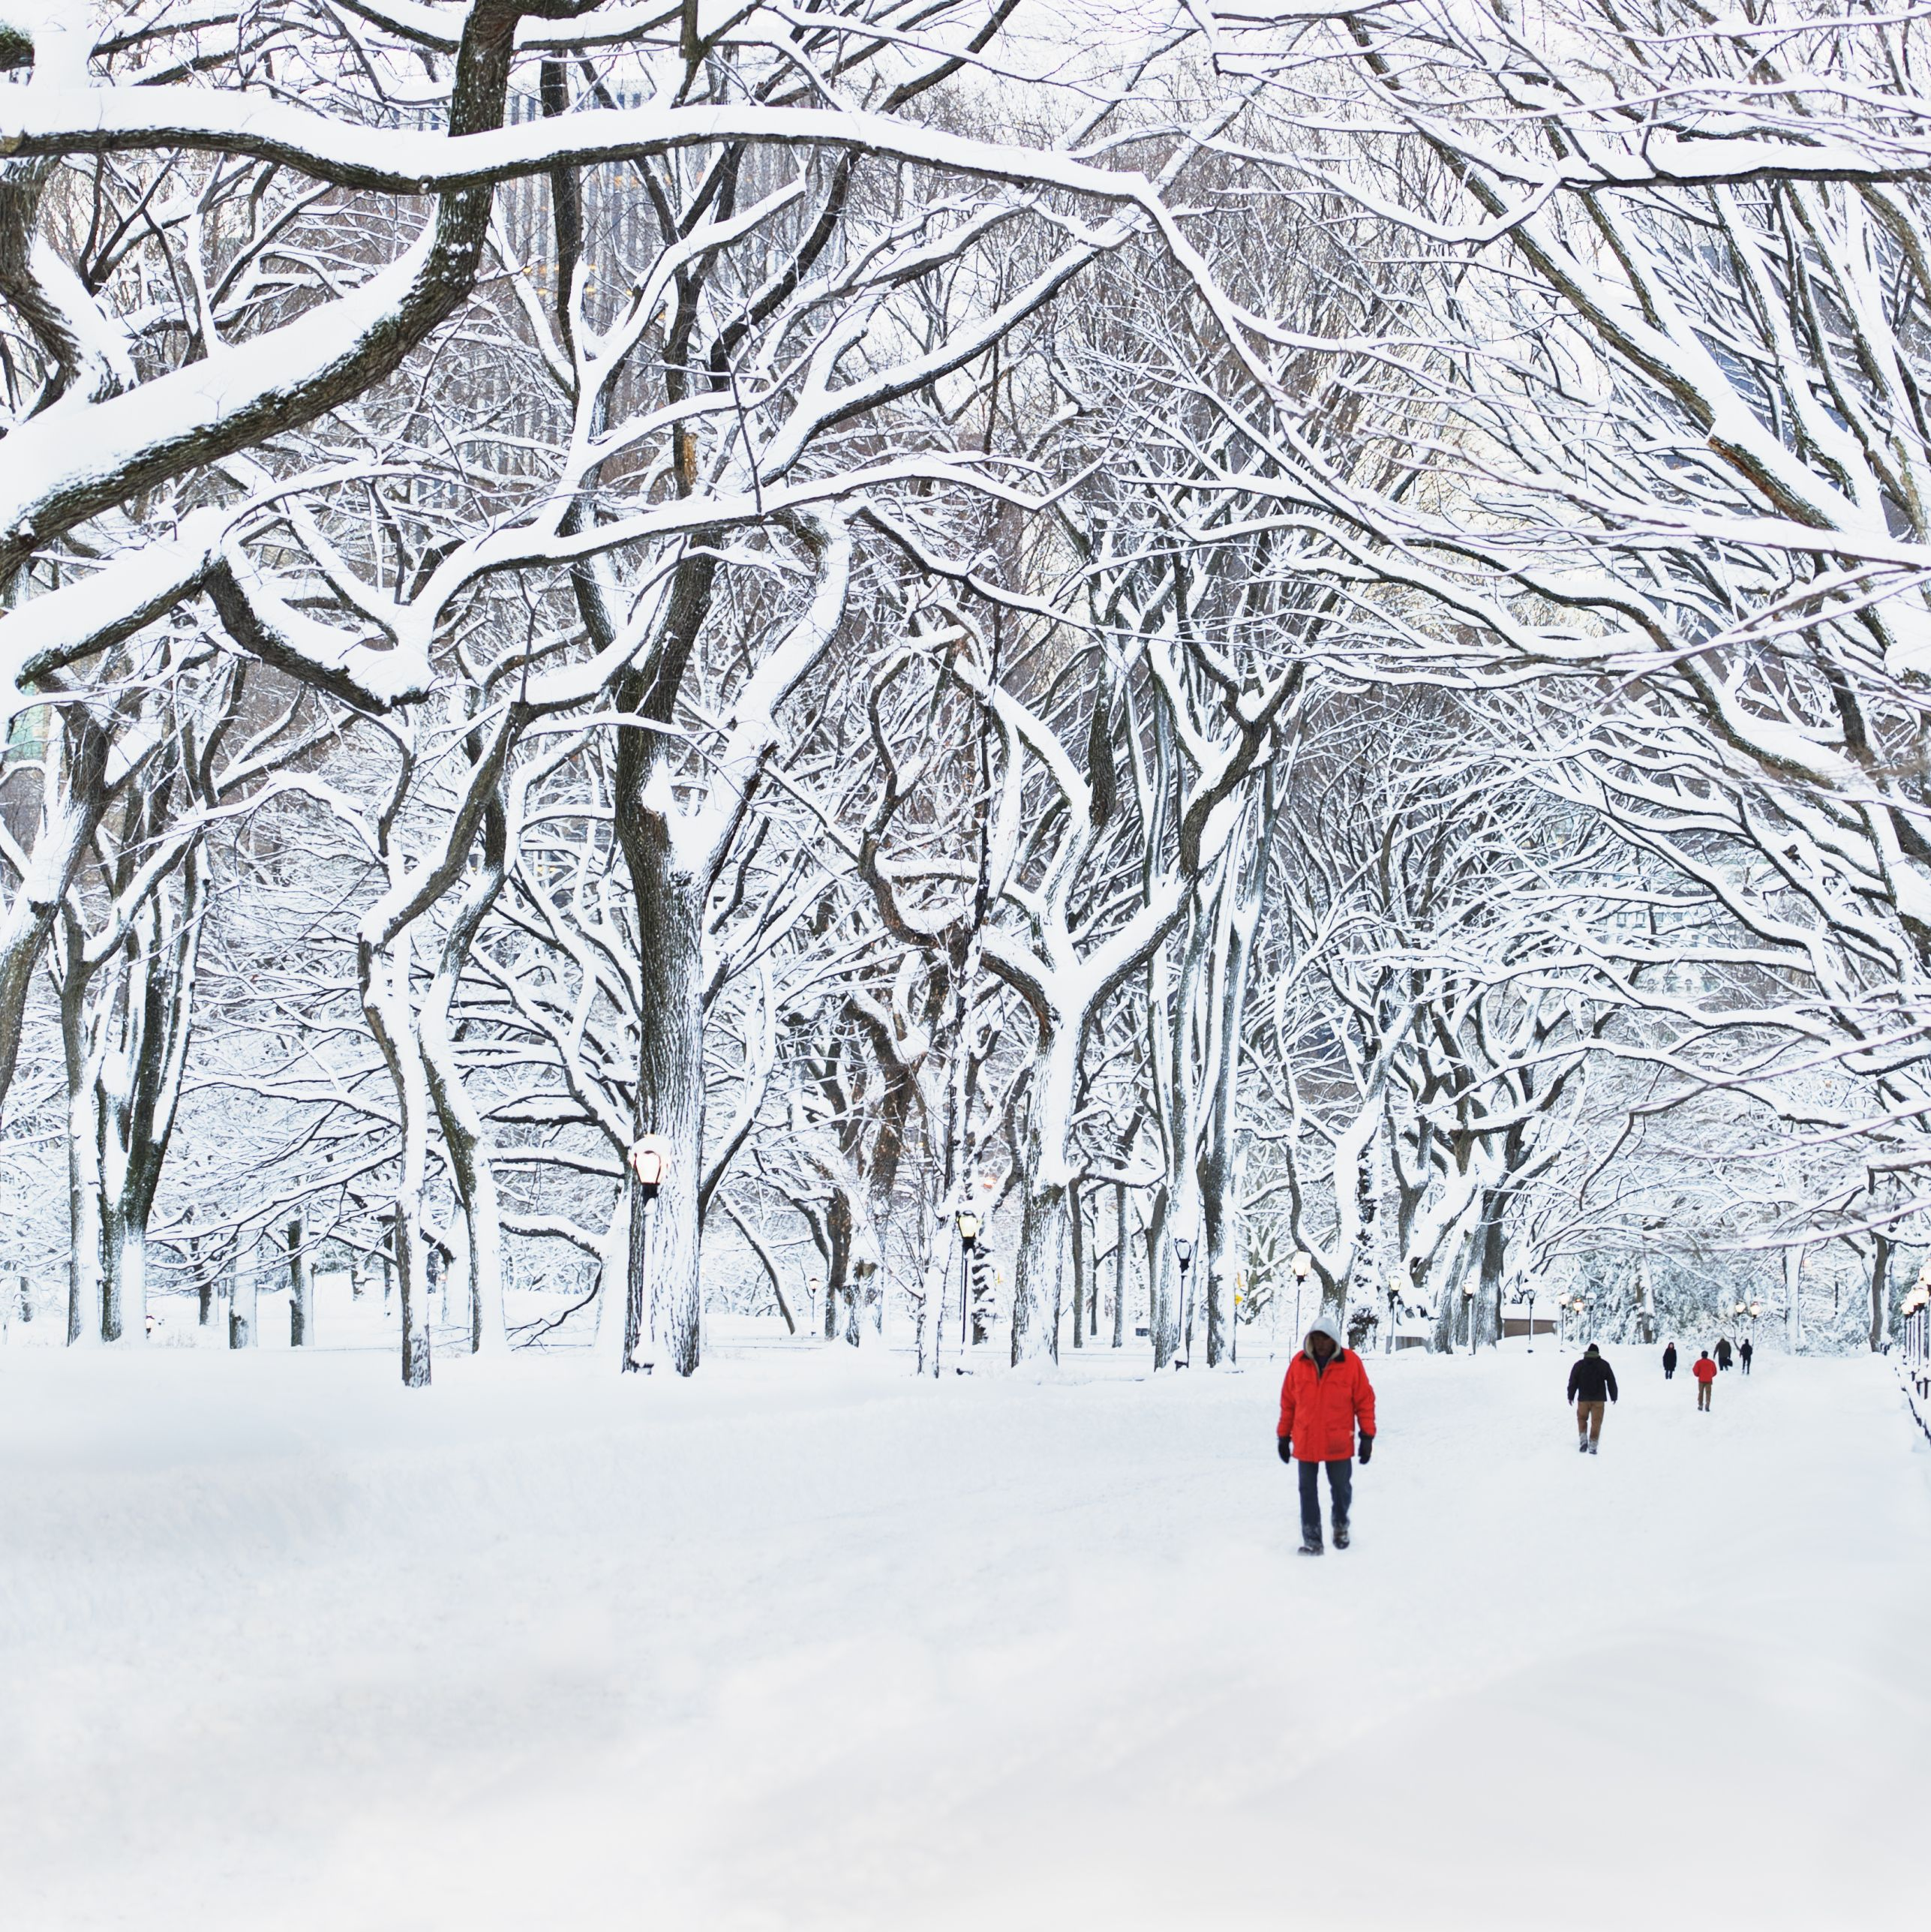 <p>Away from the hustle and bustle of the Macy's holiday windows, Manhattan's famed Central Park becomes a winter wonderland under a thick coat of powdery snow.</p>